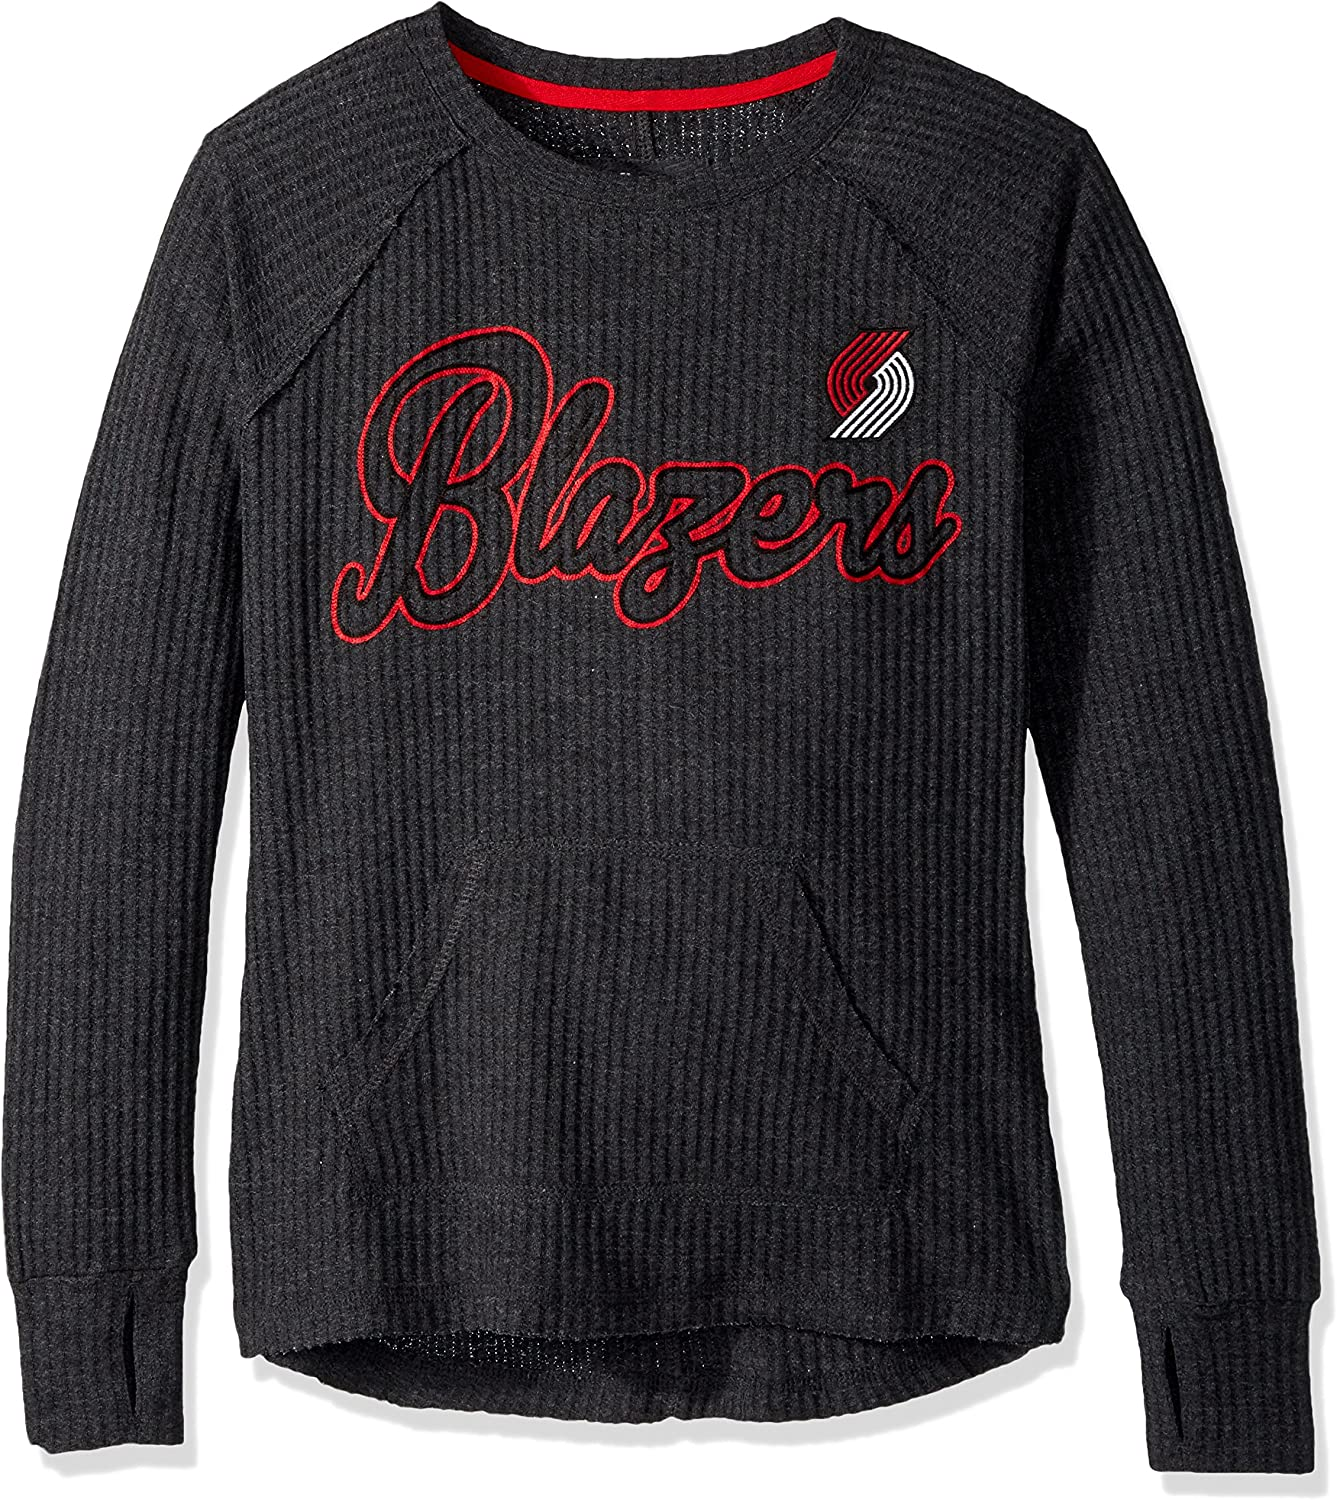 GIII For Her Off Season Pull Over